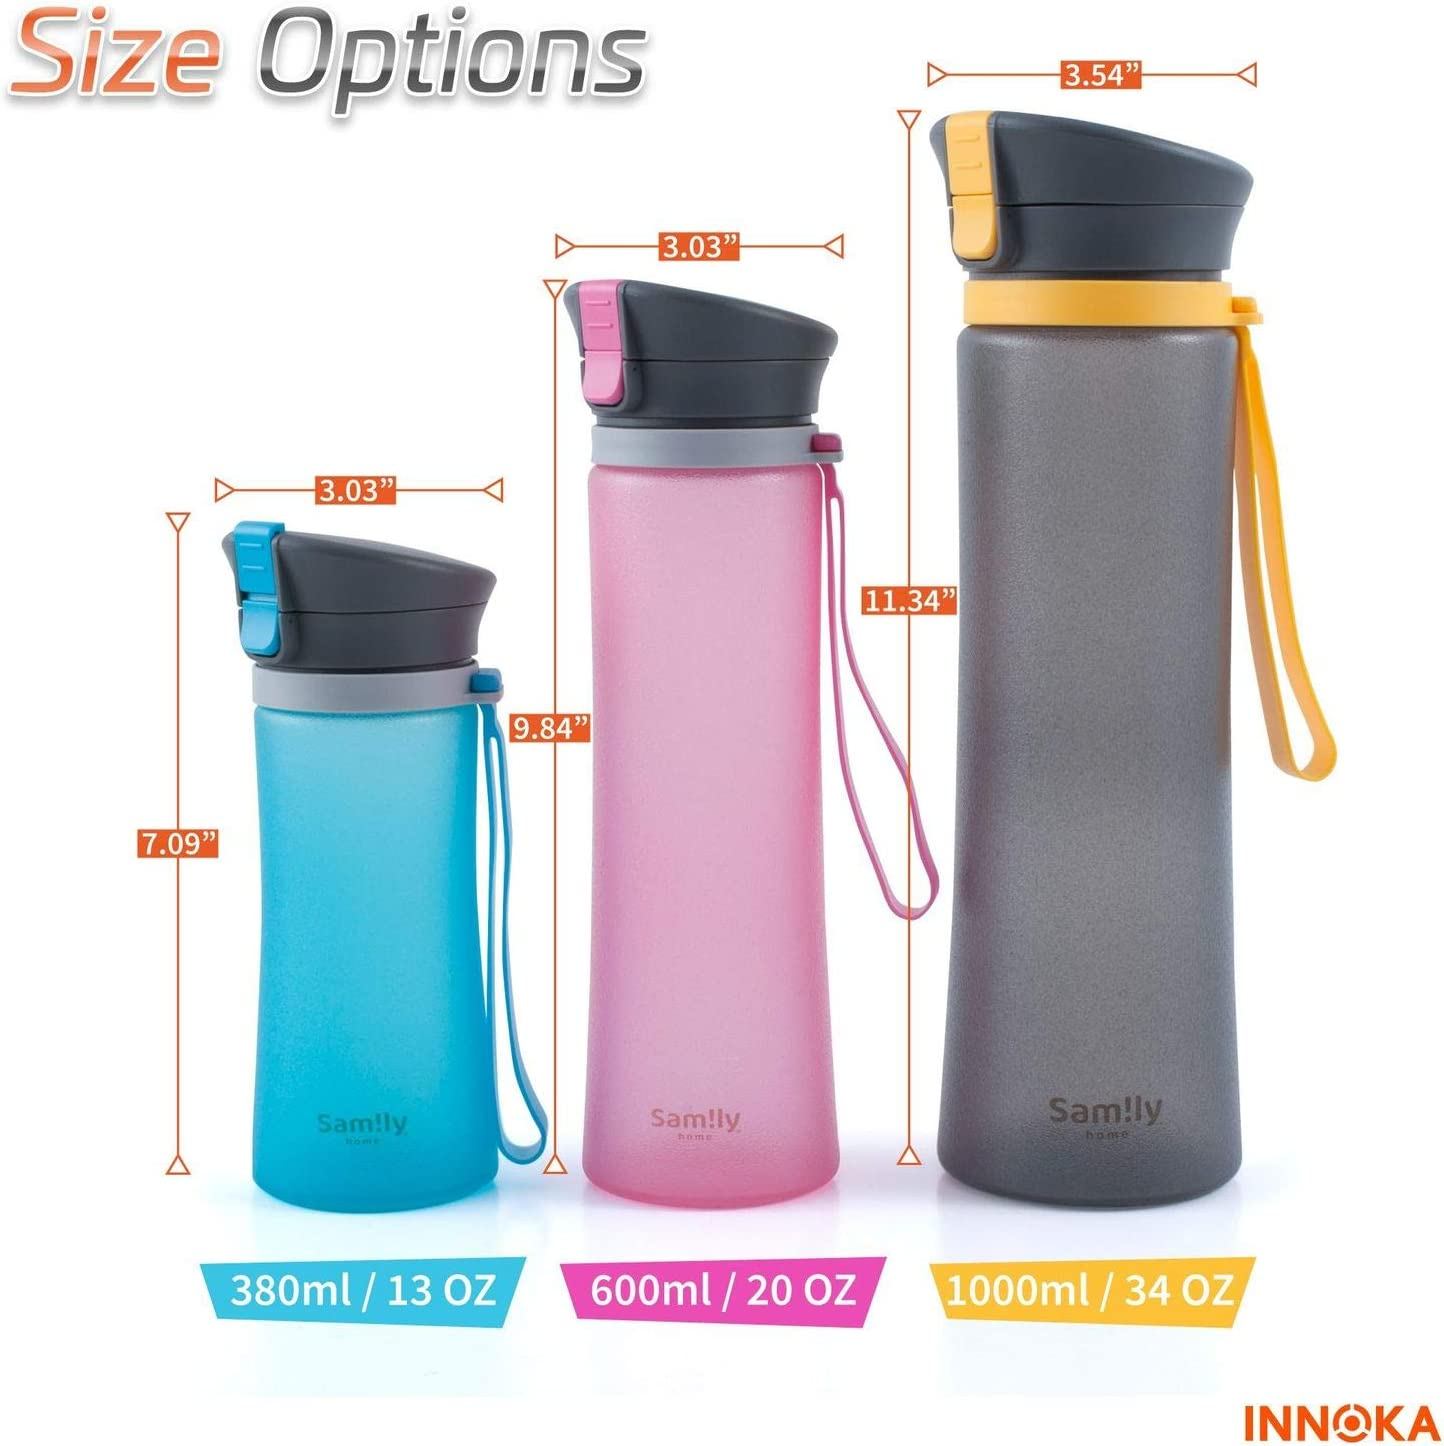 Anti-Slip Fast Flow Shatter Resistant Eco-Friendly INNOKA Samily 20oz Non-Toxic for Outdoor Hiking Flip Top Lid BPA-Free Sports Glass Water Bottle w//Patented Silicone Coated Leak Proof